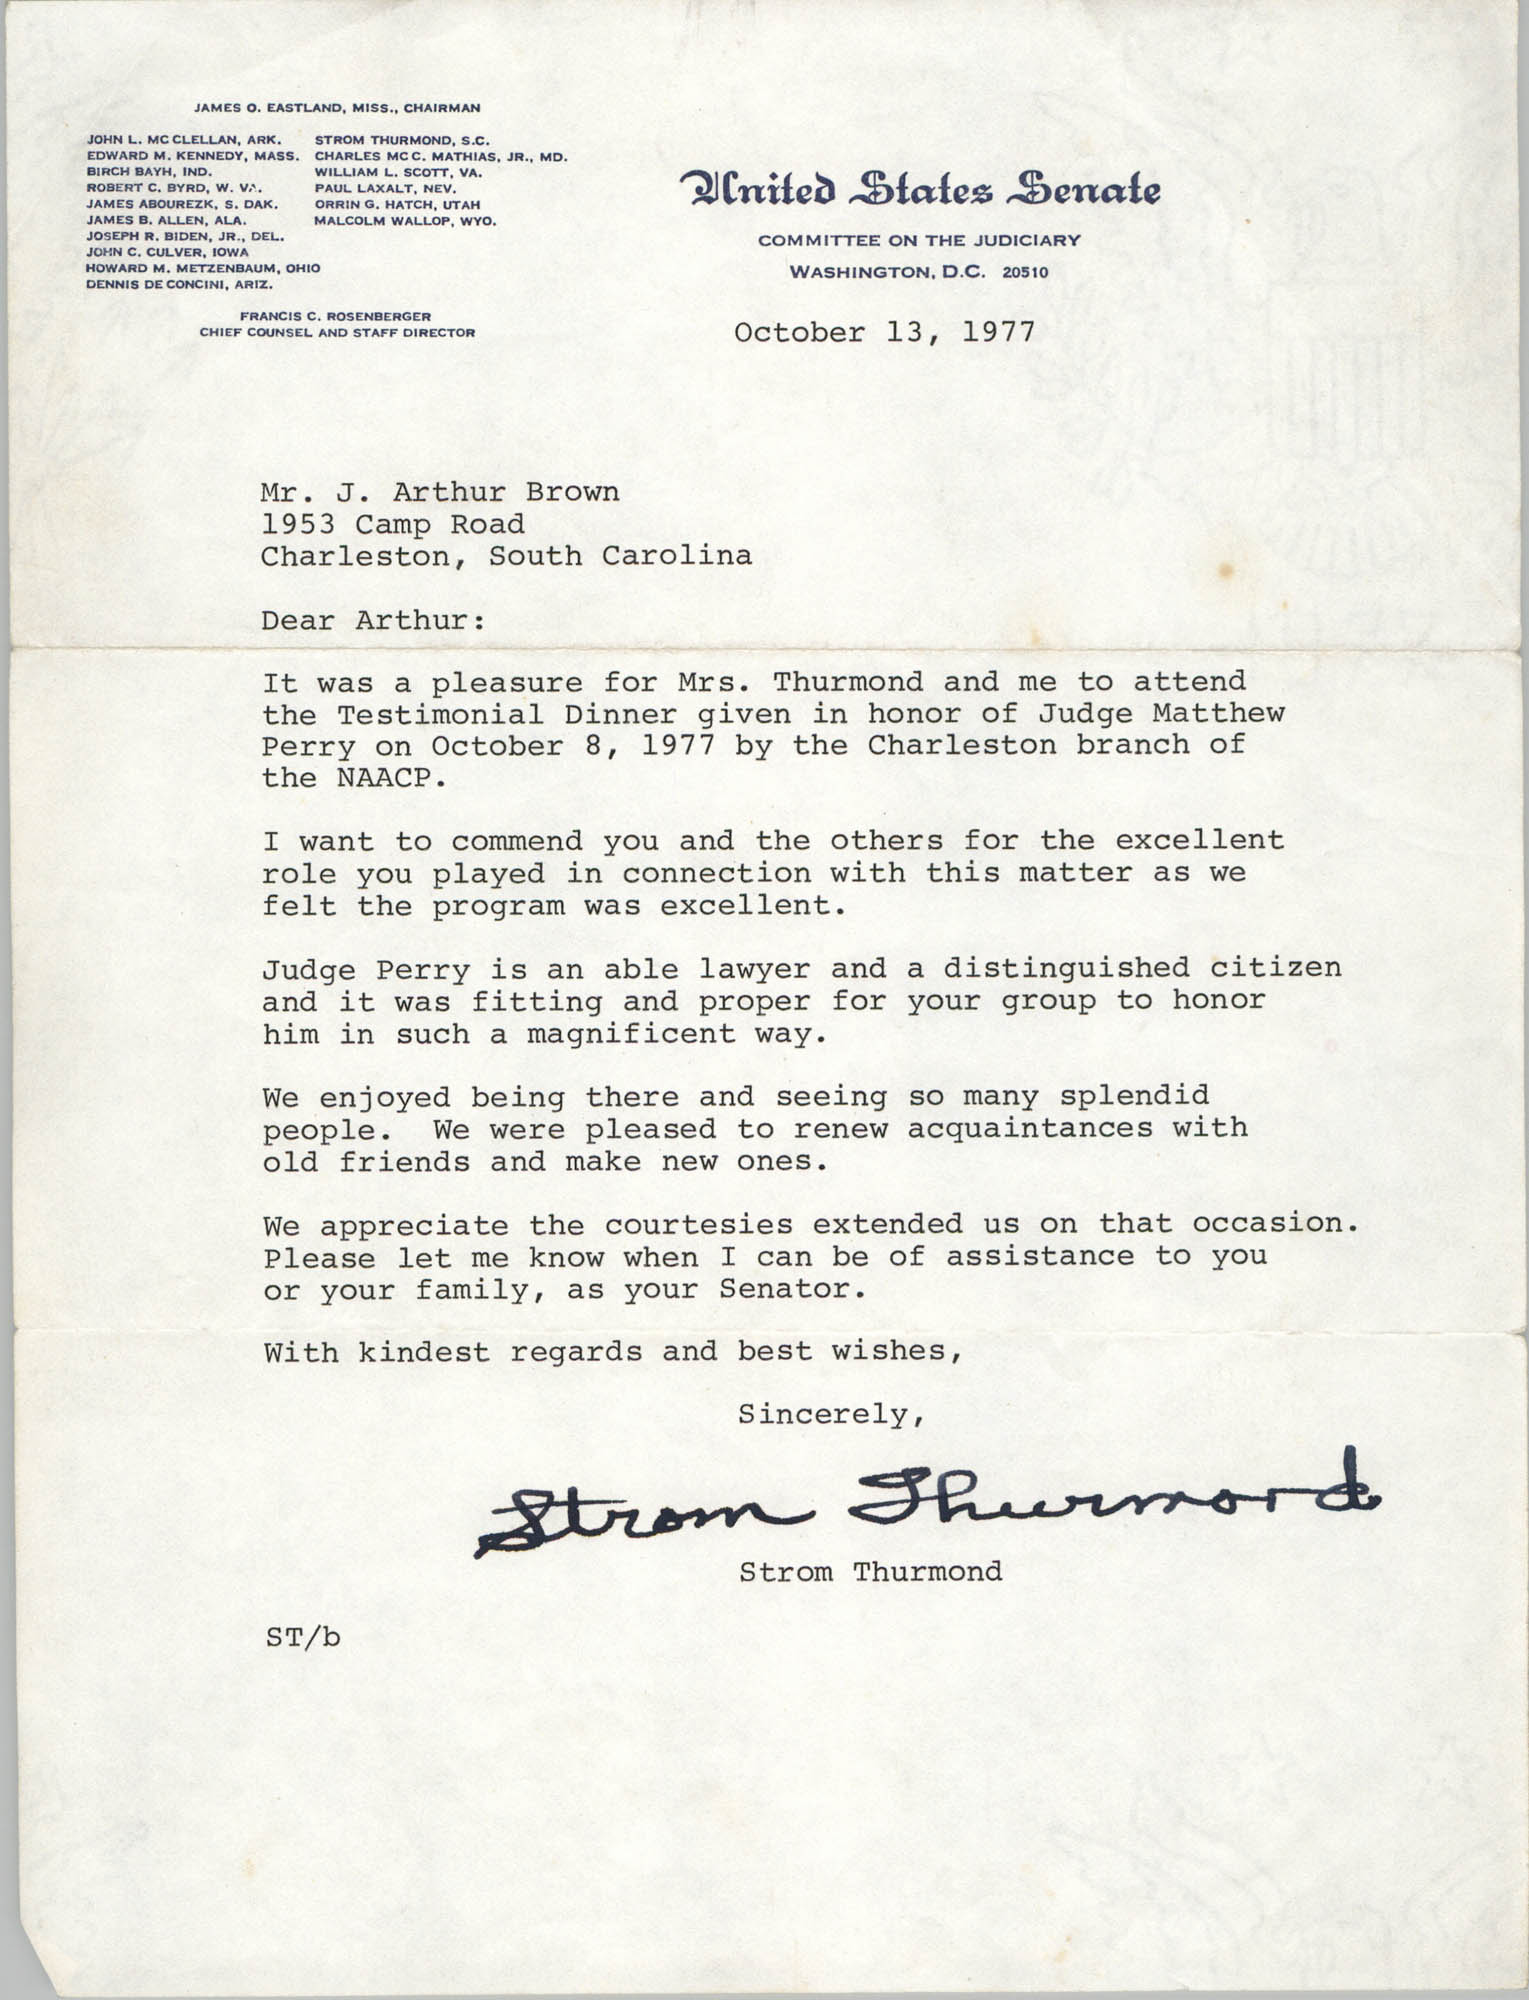 Letter from Strom Thurmond to J. Arthur Brown, October 13, 1977